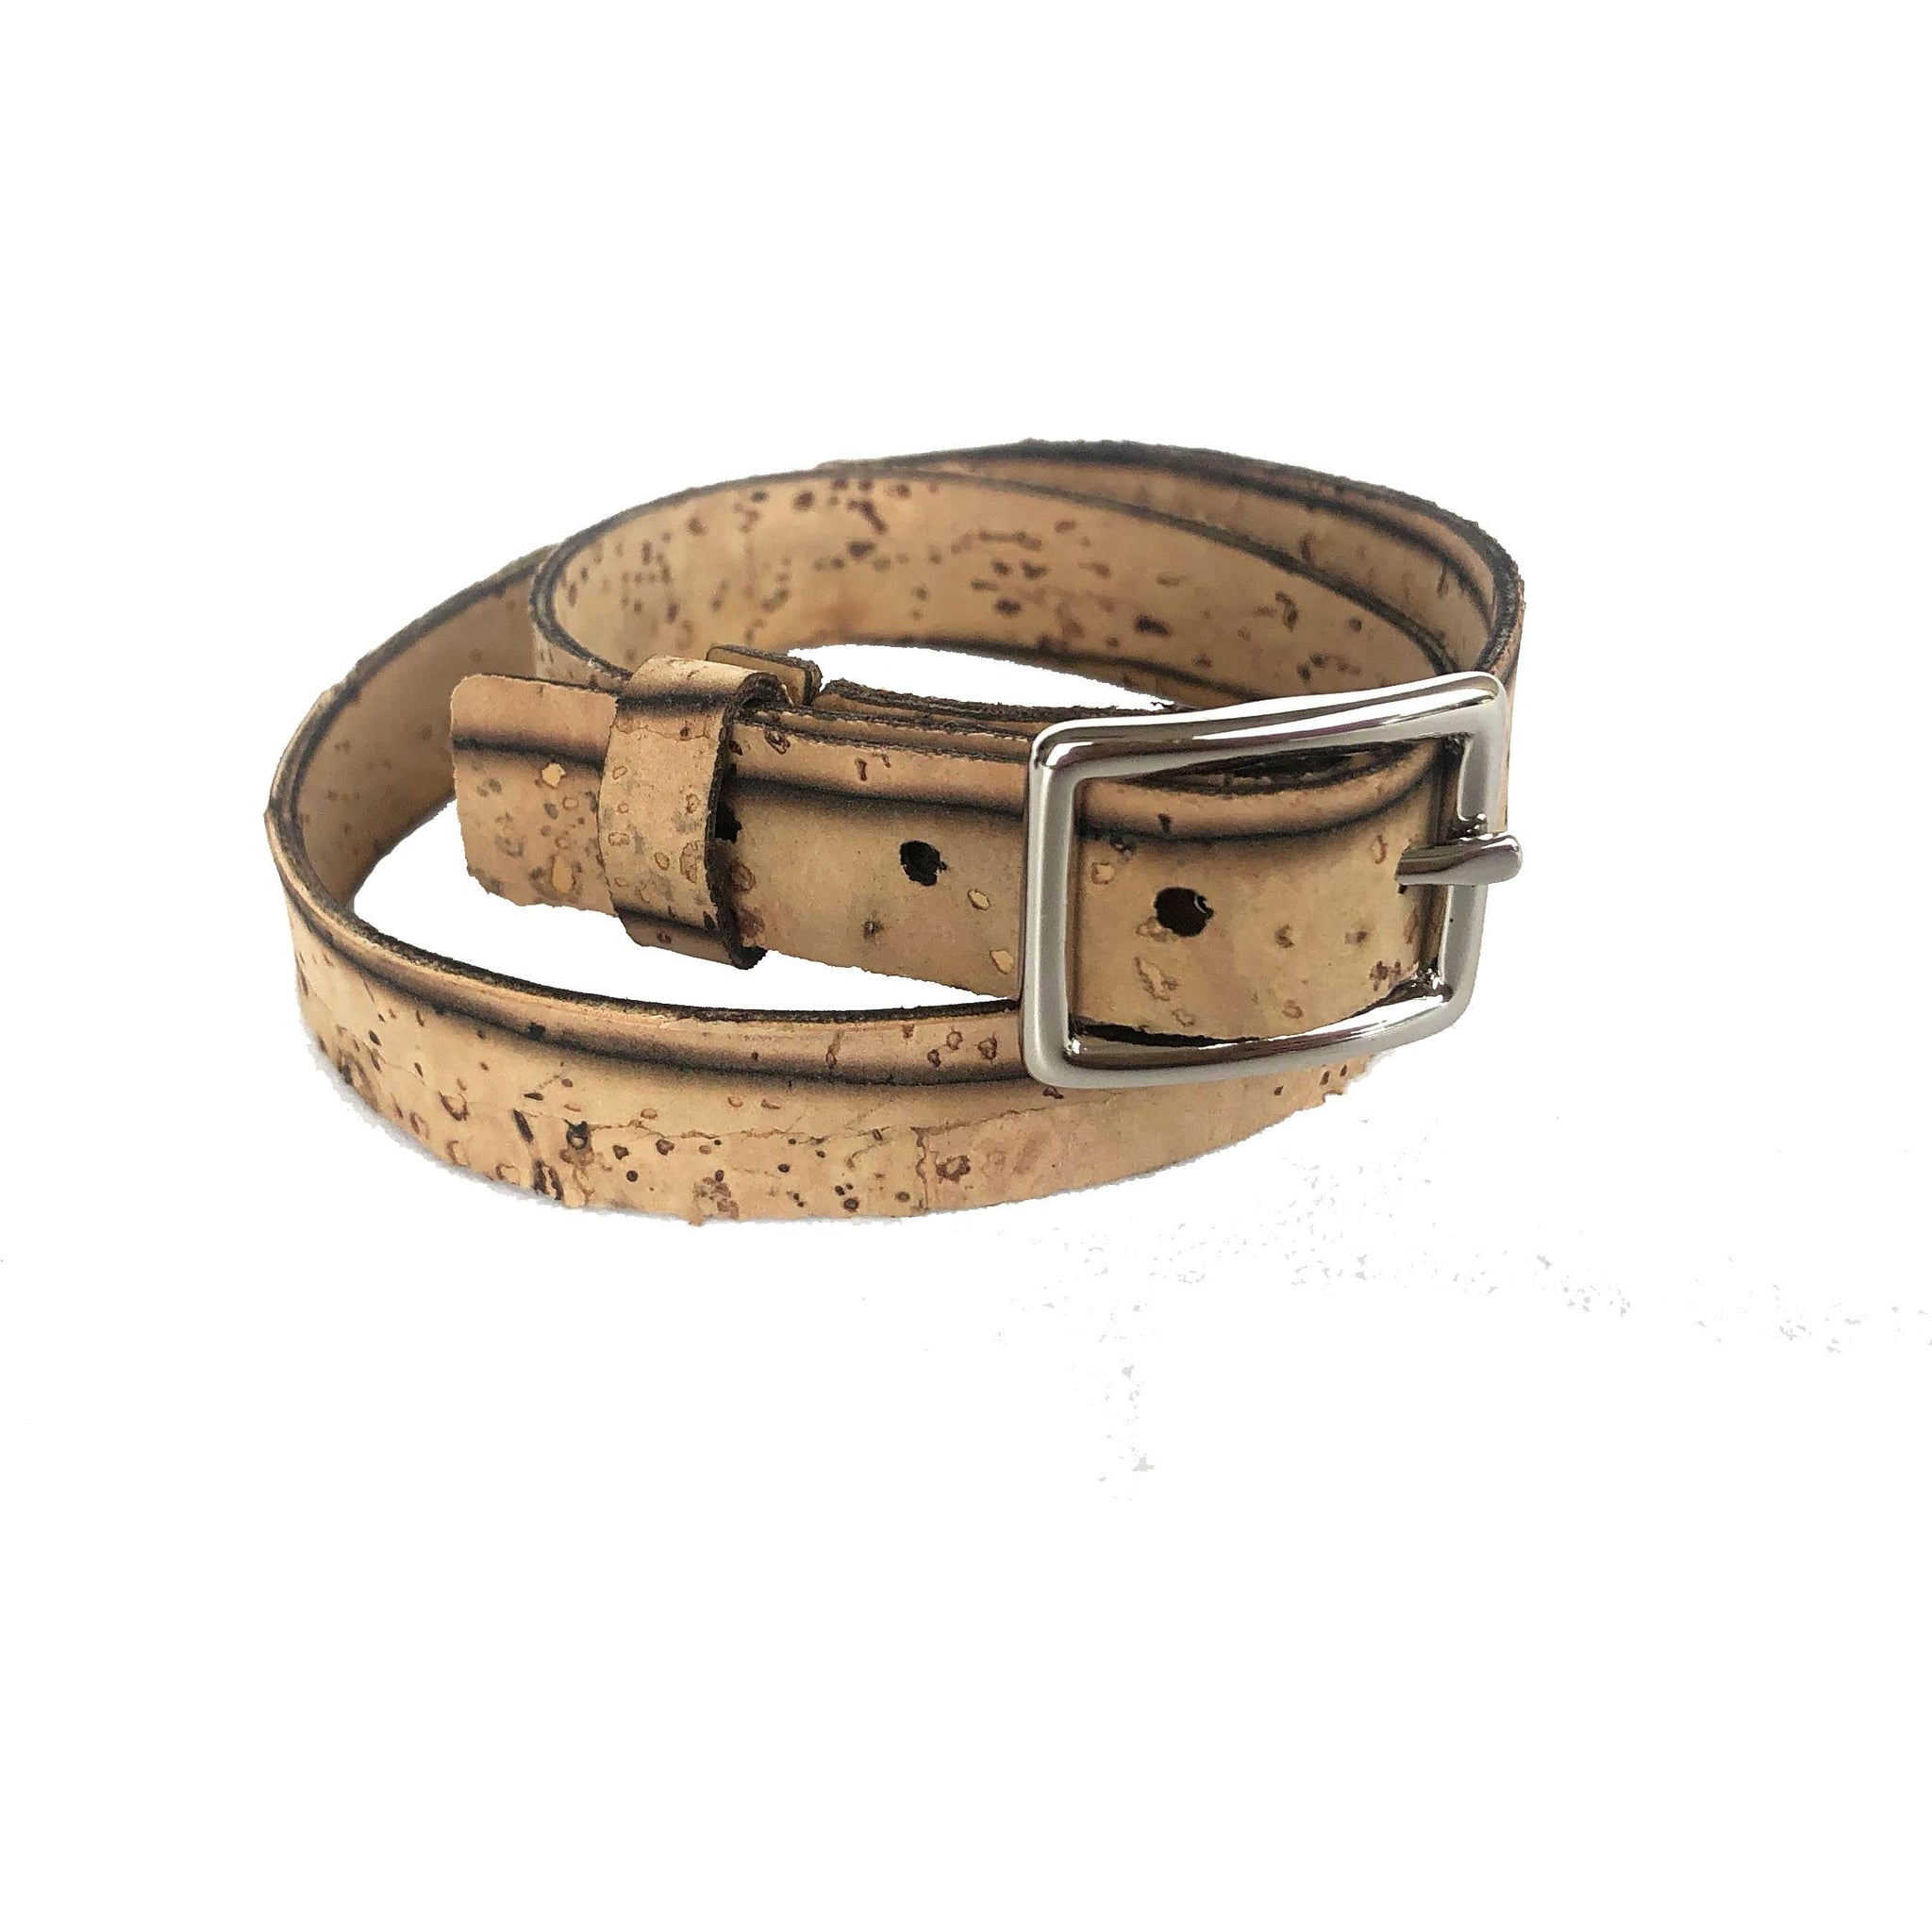 Buckled Double Bracelet